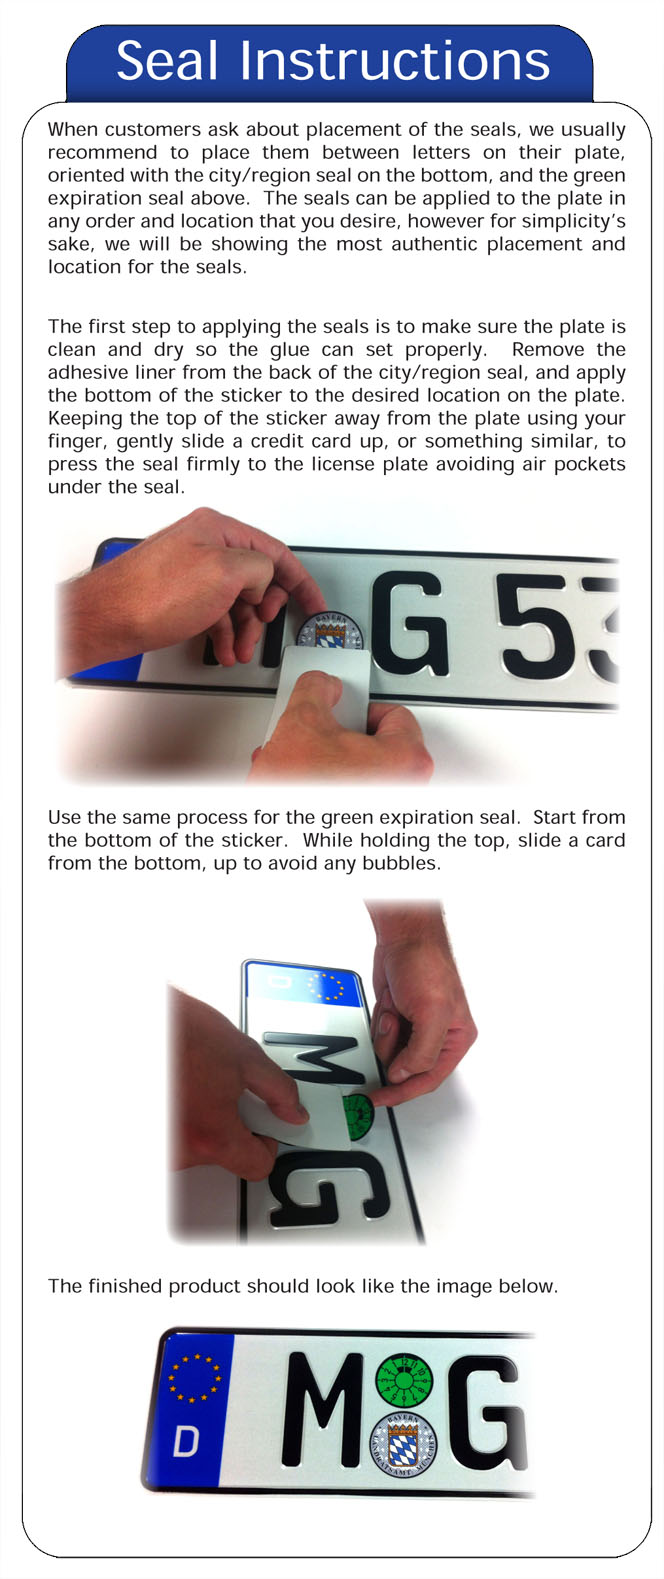 Custom European License Plate Registration Seal Mounting Instructions